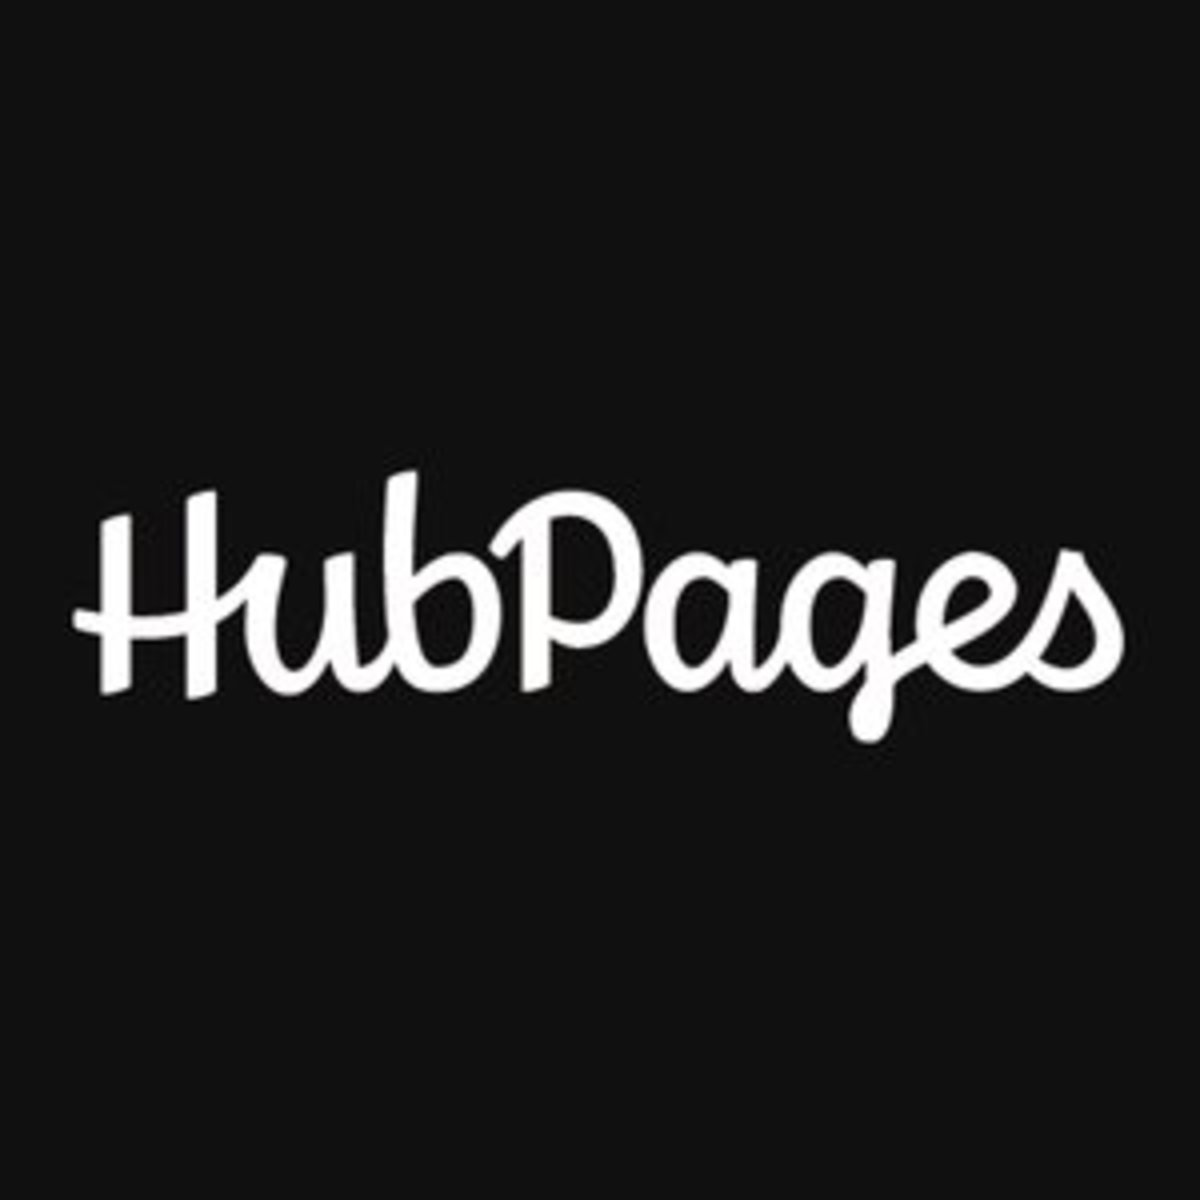 Hubpages - A great site to write for